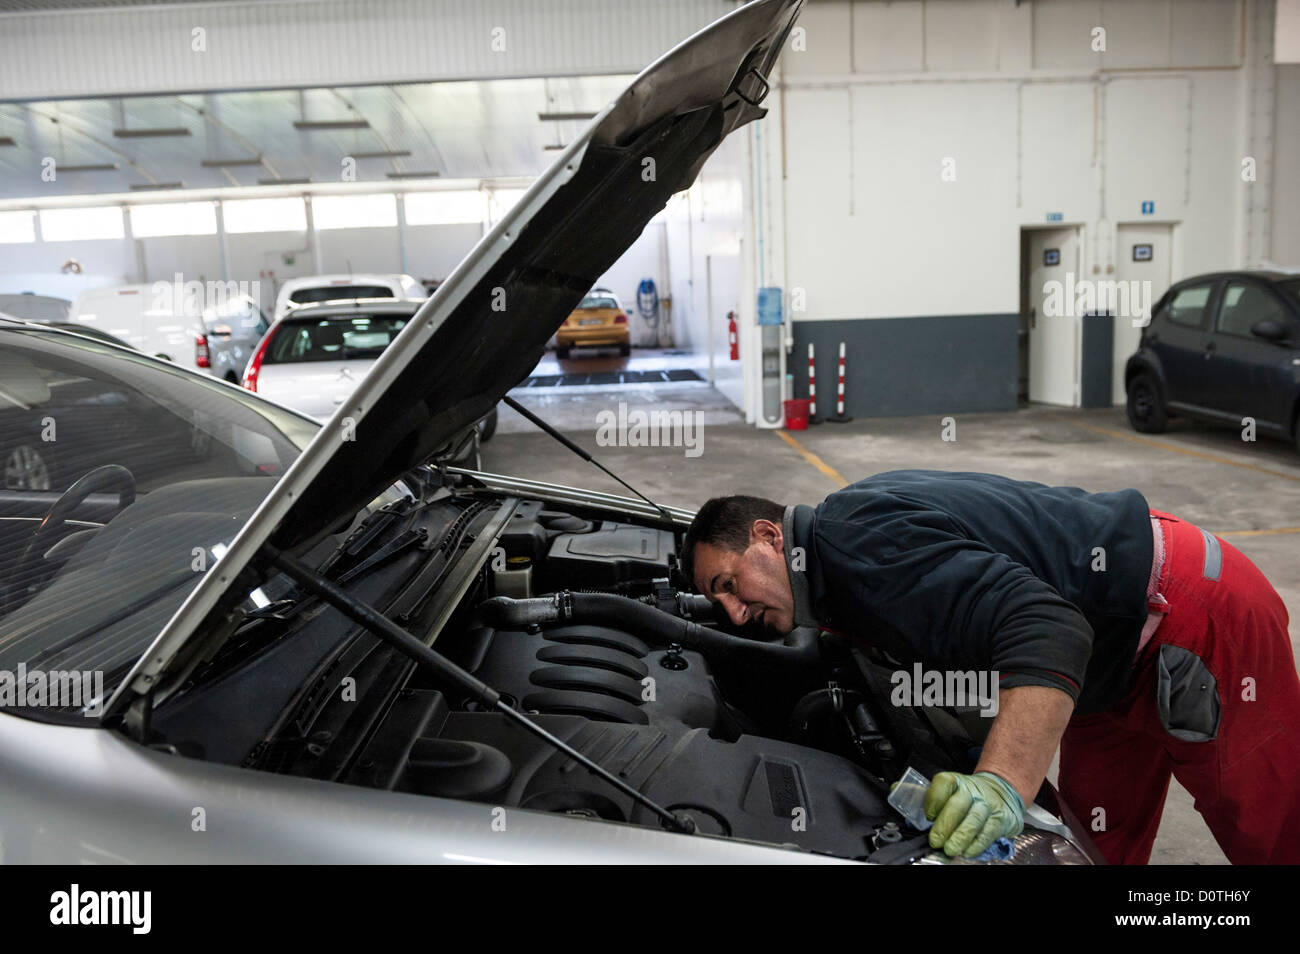 Car mechanic checking motor in auto garage - Stock Image